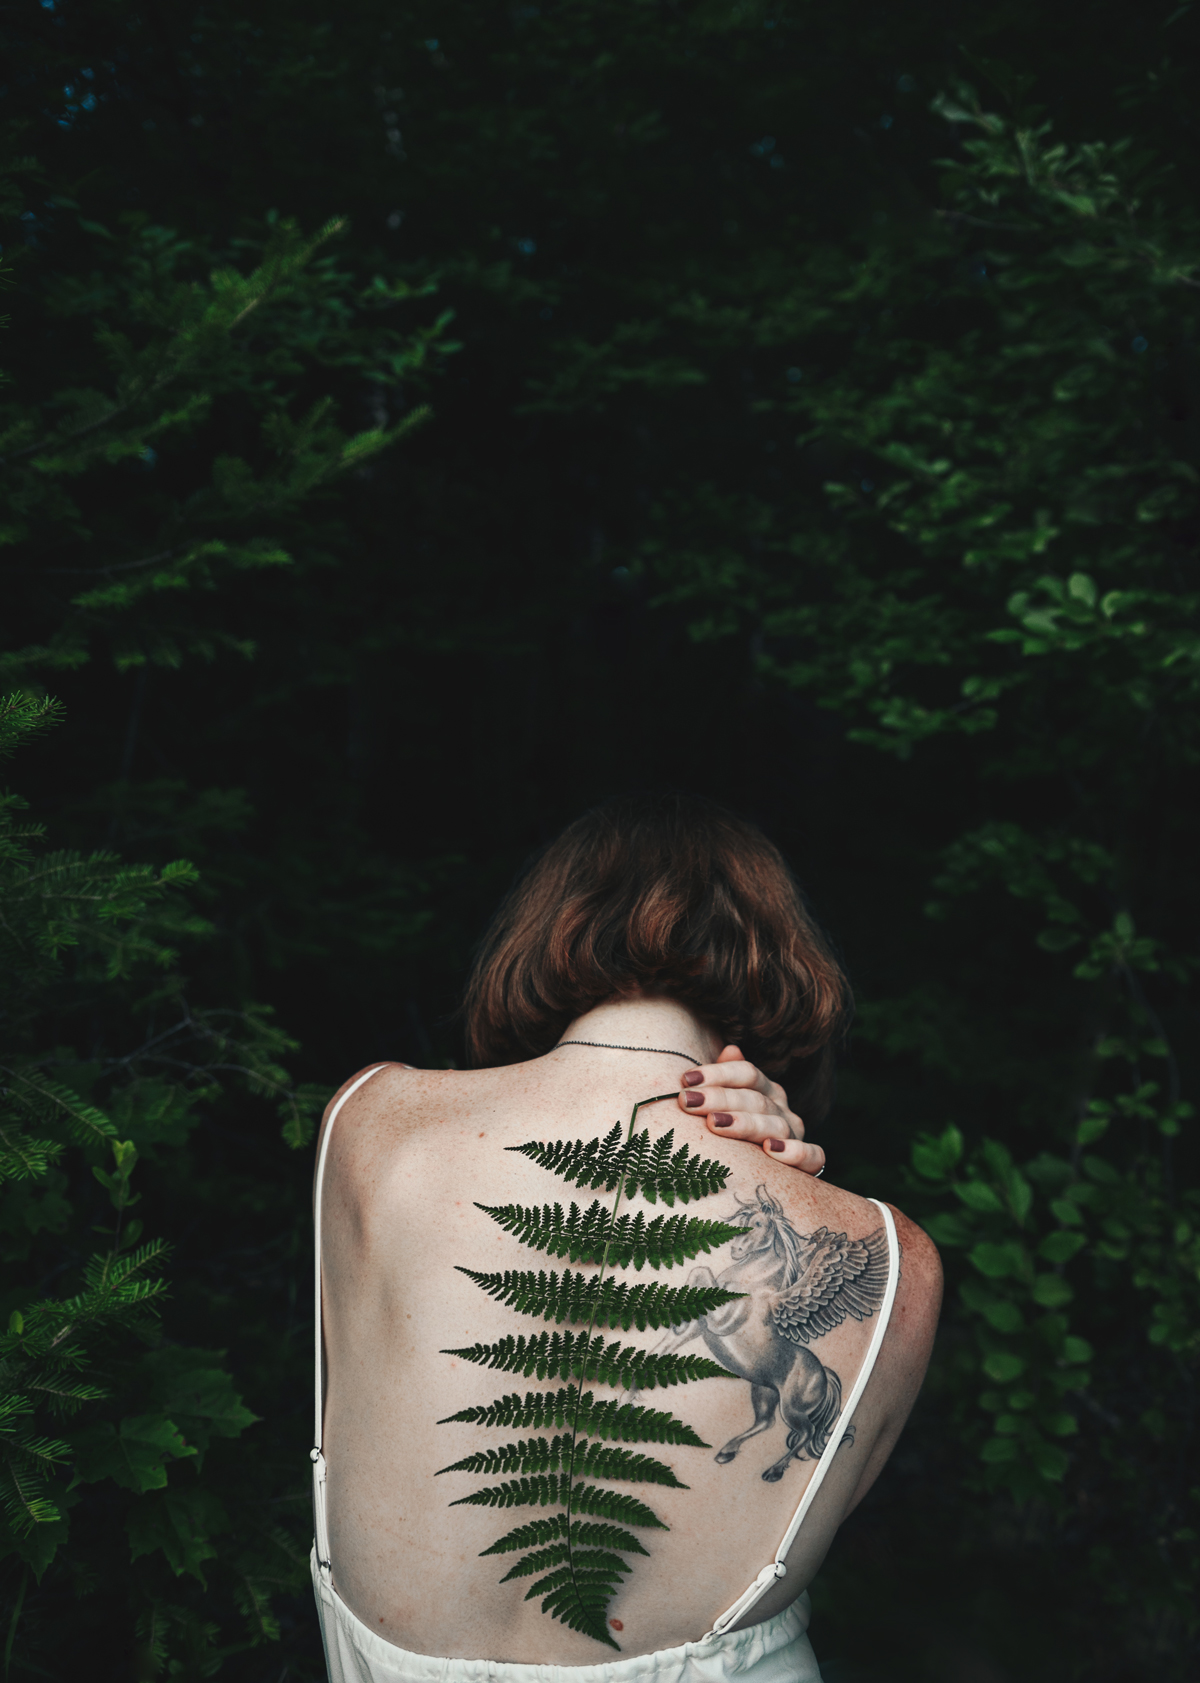 Portrait of woman with back turned to camera by Molly Olwig